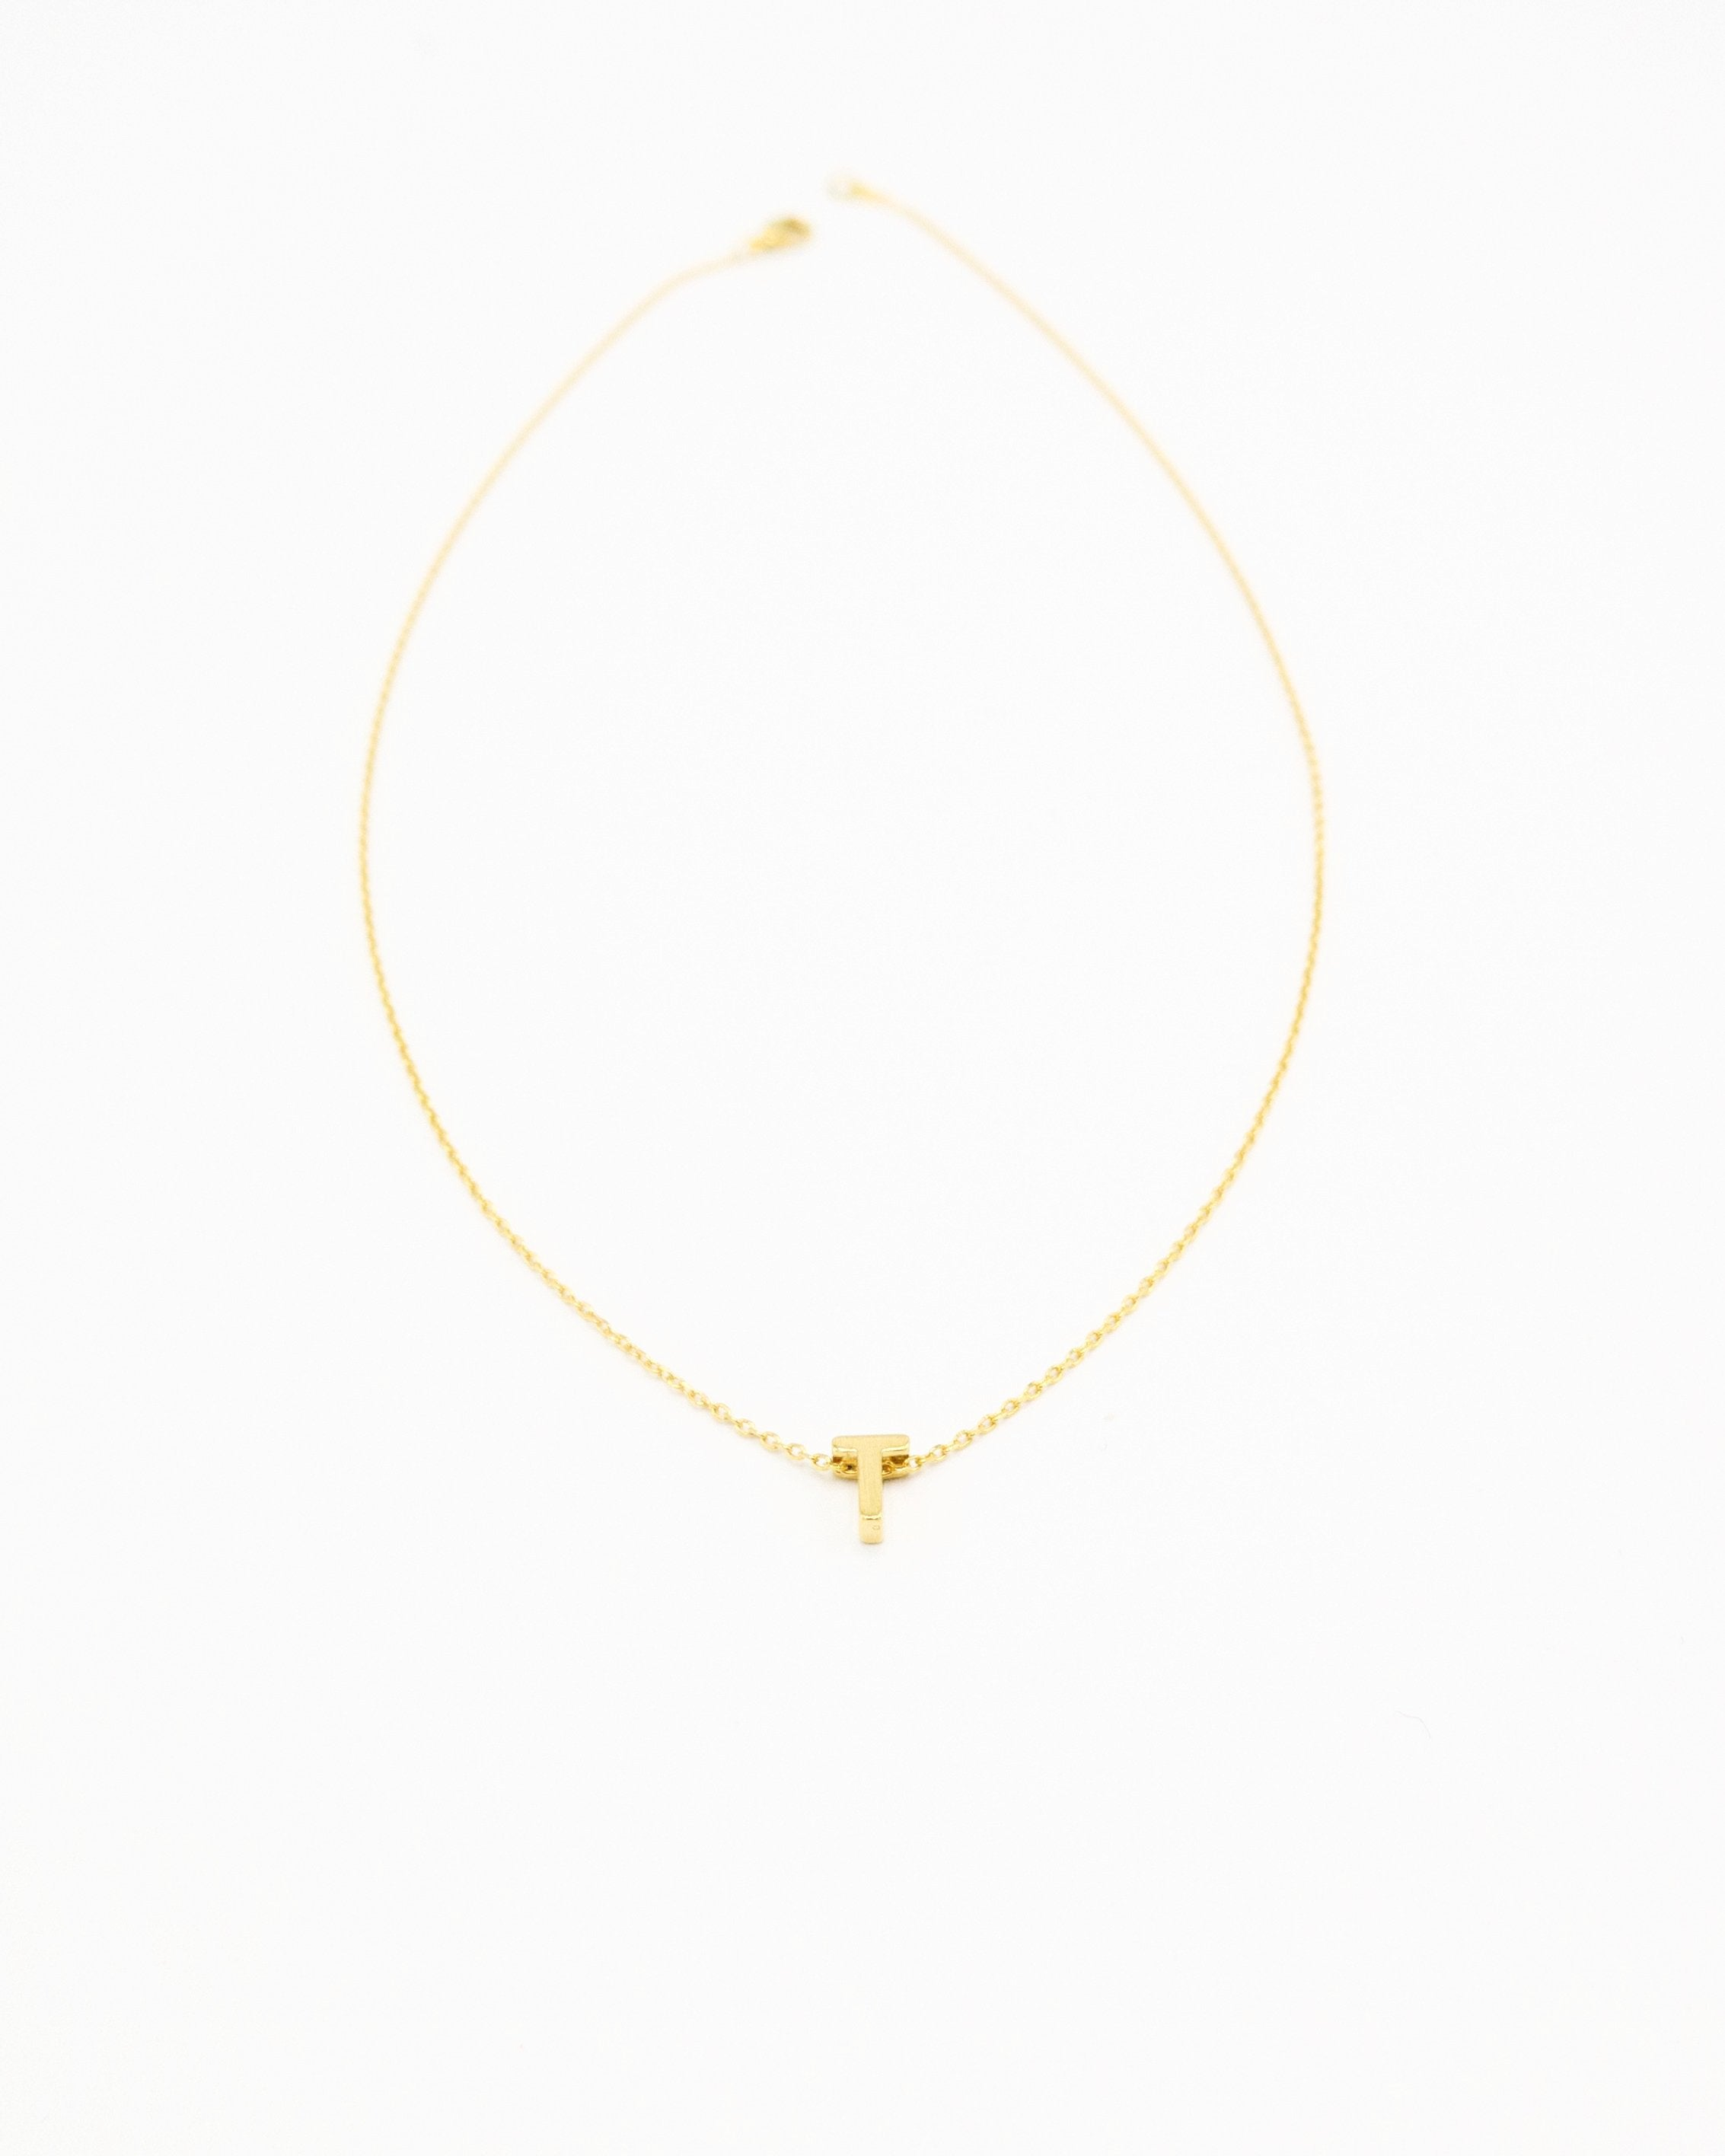 Cut Out Initial Necklace in gold